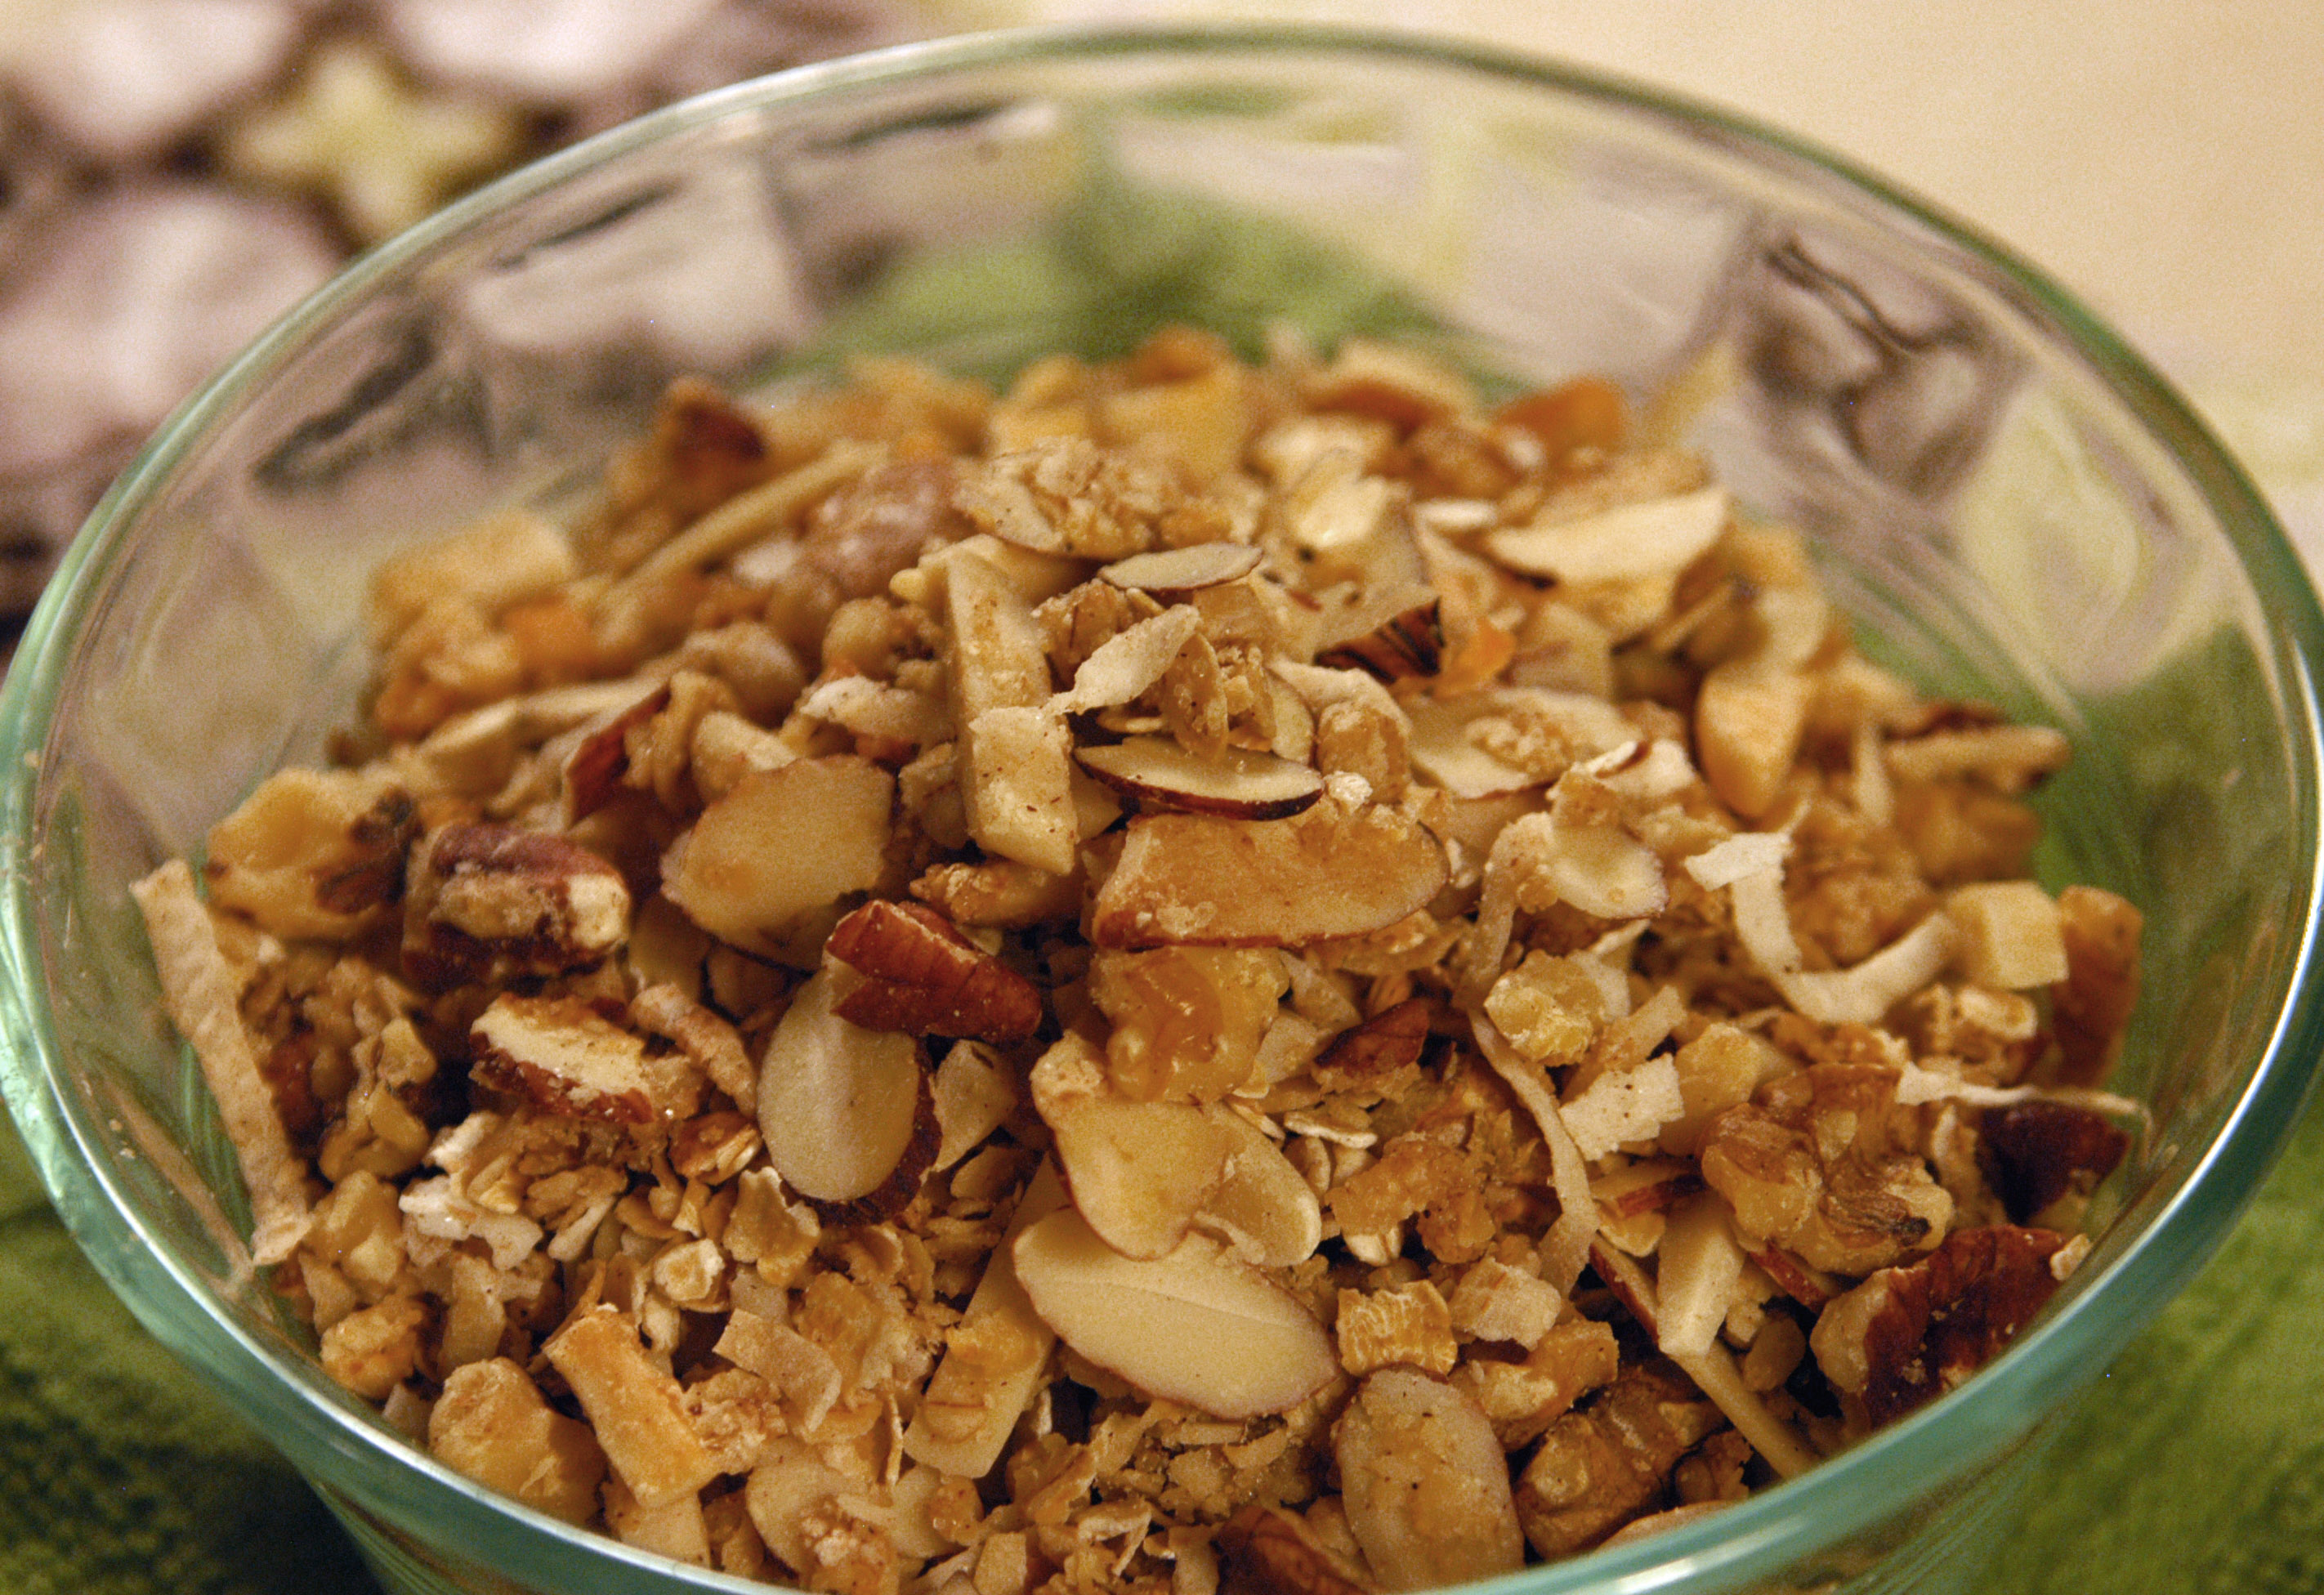 Healthy Delicious Homemade Granola